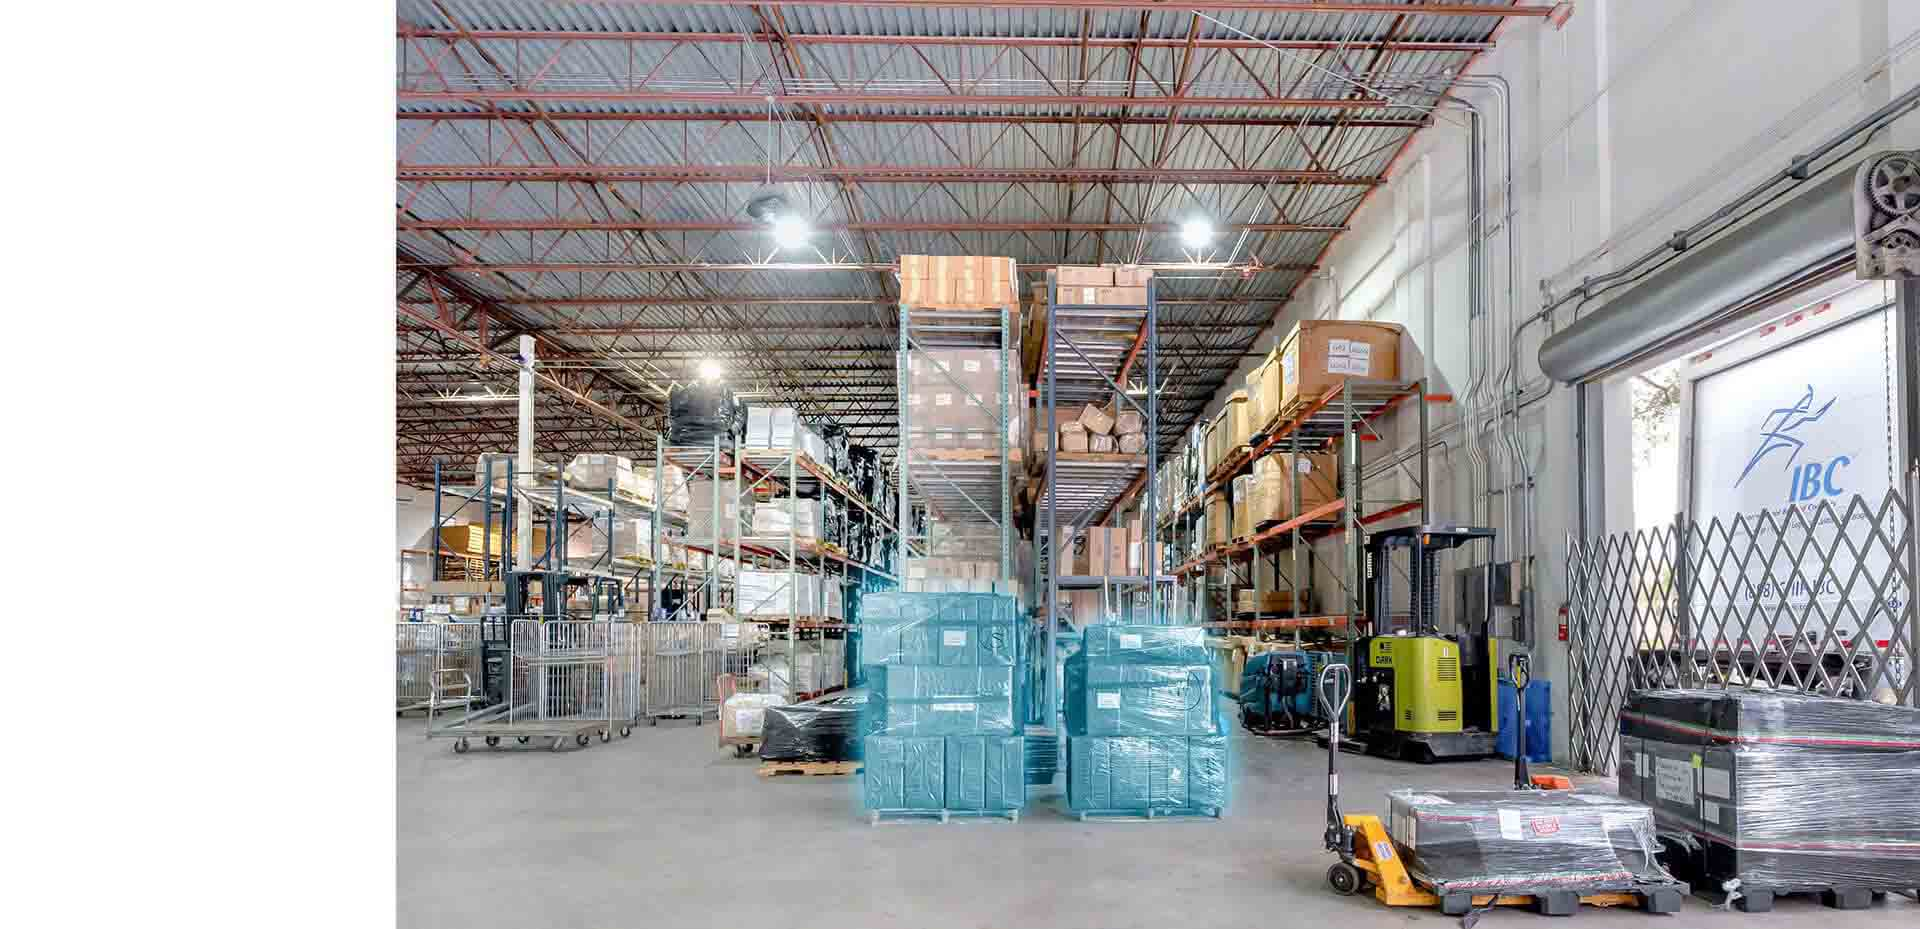 move-parcels-with-confidence-blue3-2-max-min-1